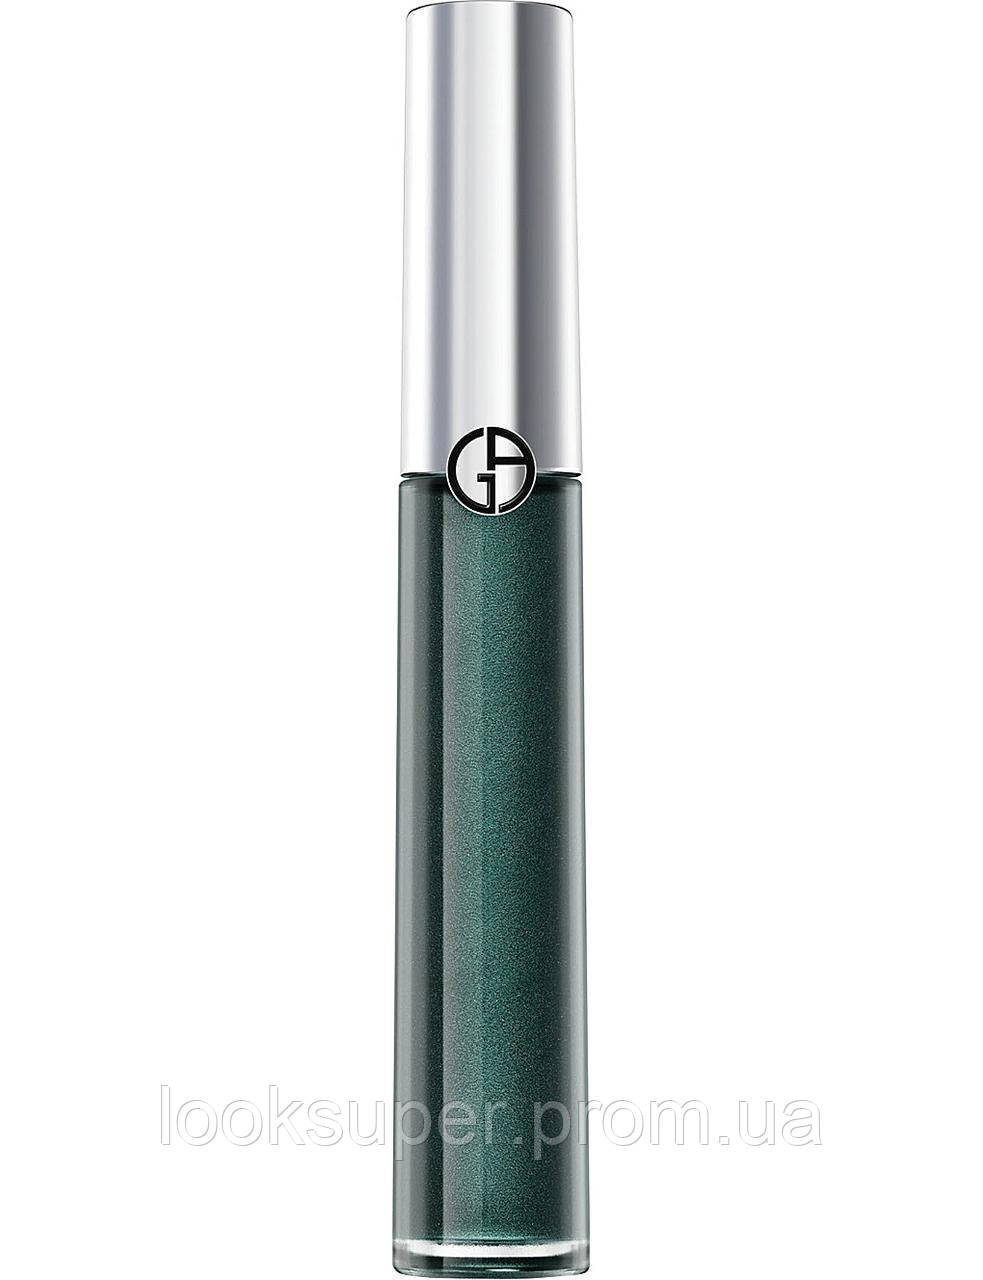 Тени GIORGIO ARMANI Eye Tint fluid eyeshadow Emeraude